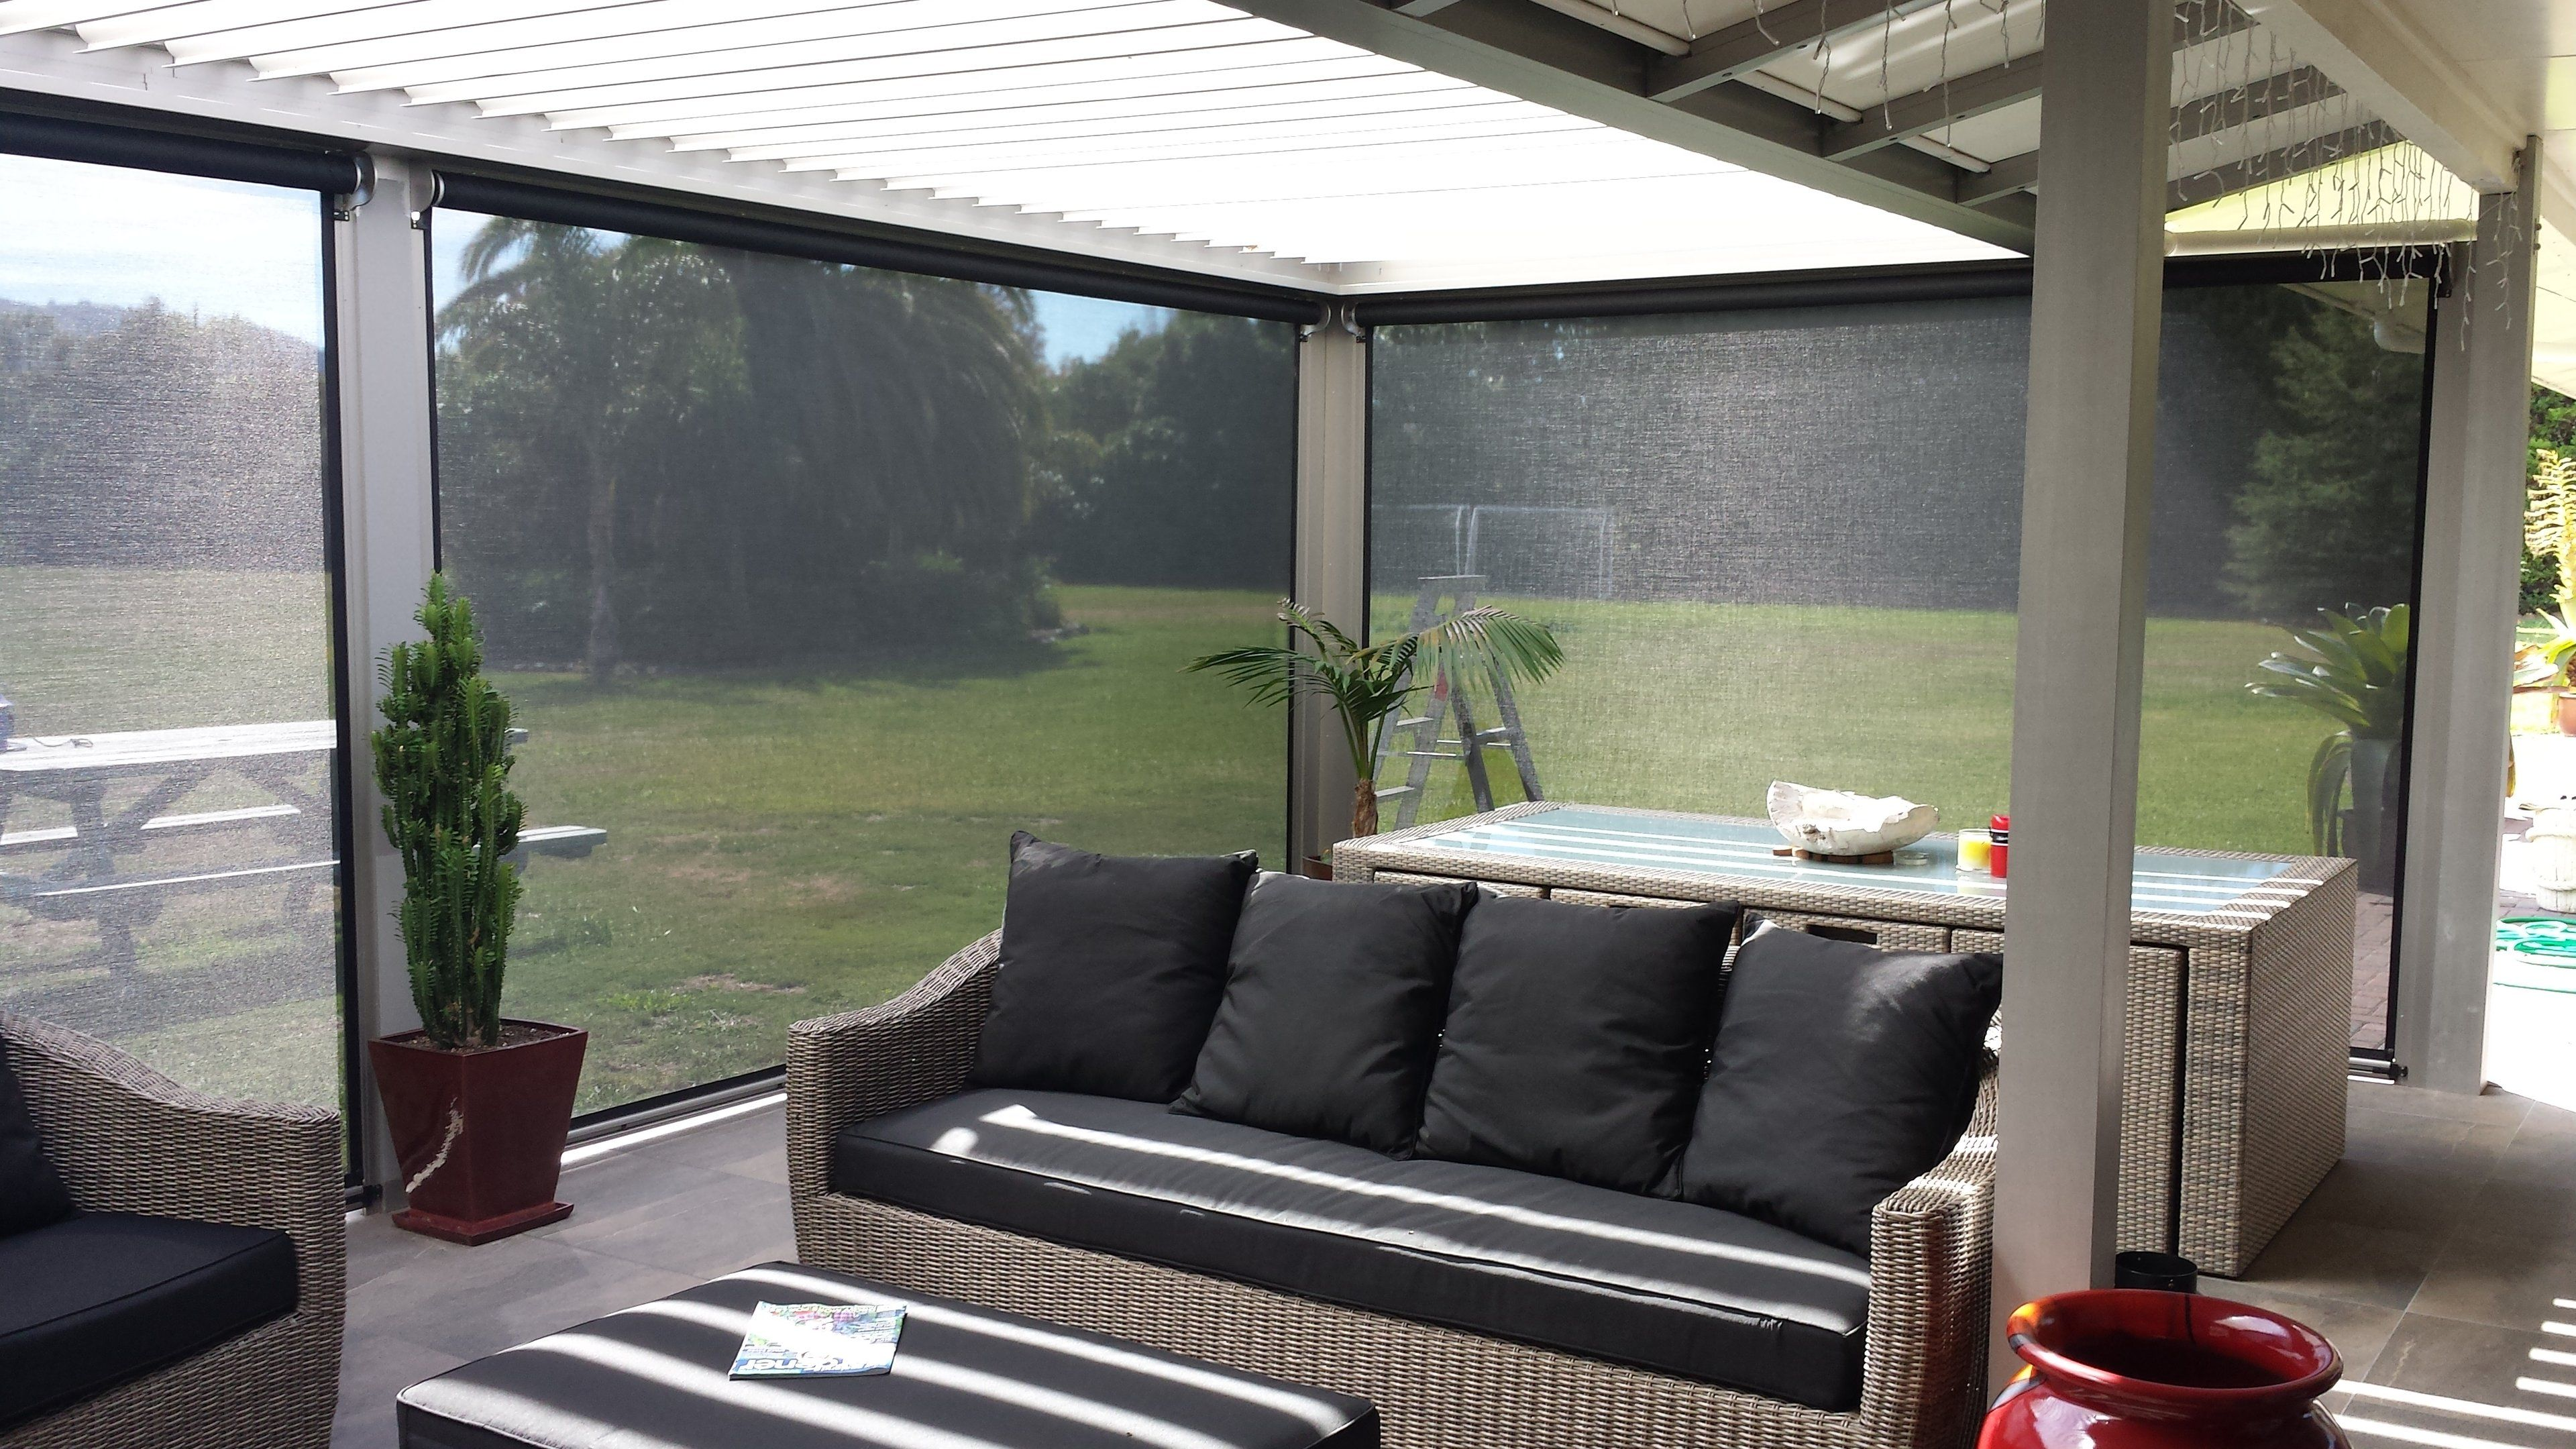 20 Elegant Outdoor Room Nz Ideas Outdoorroom Encouraged In Order To The Website In This Particular P Outdoor Rooms Outdoor Room Decor Modern Outdoor Living